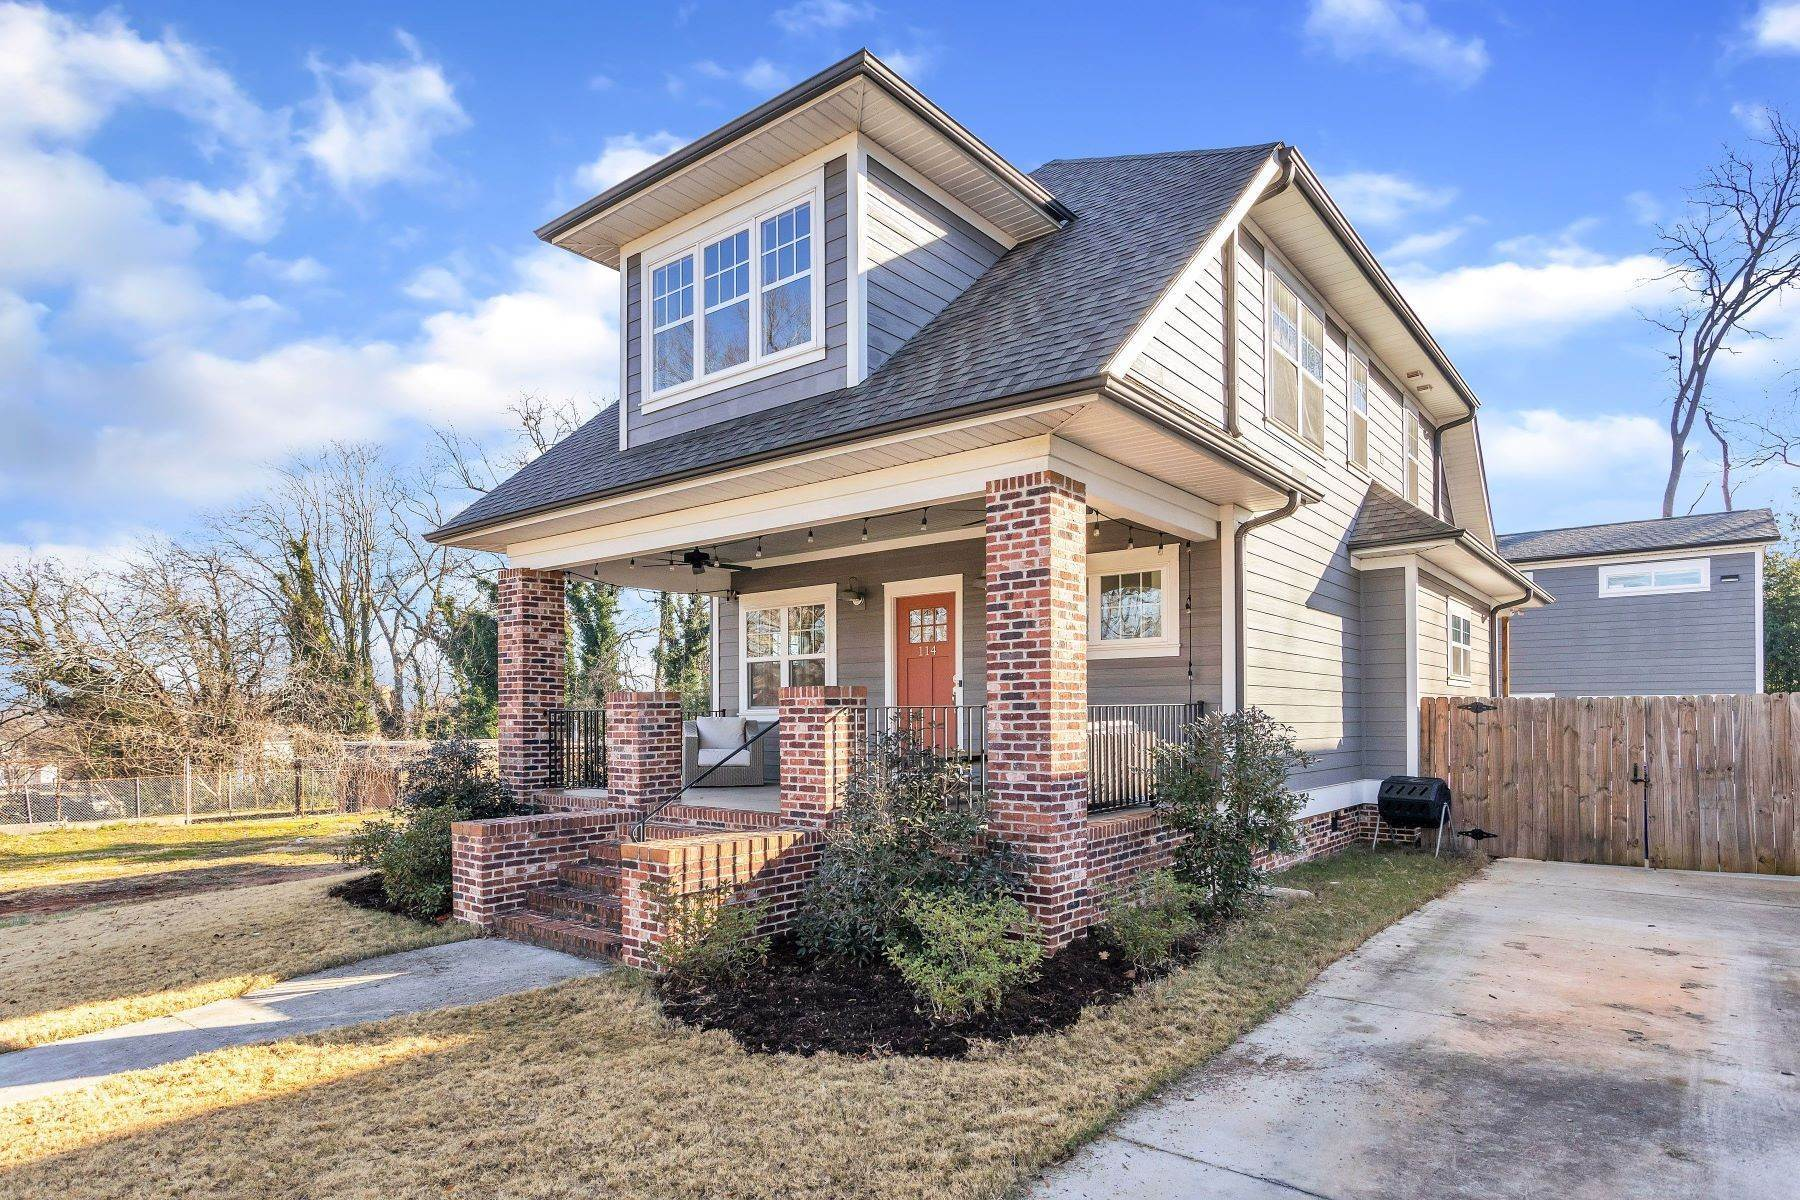 32. Single Family Homes for Sale at UNDER CONTRACT! 114 North Calhoun Street, Greenville, SC 29601 Greenville, SC 29601